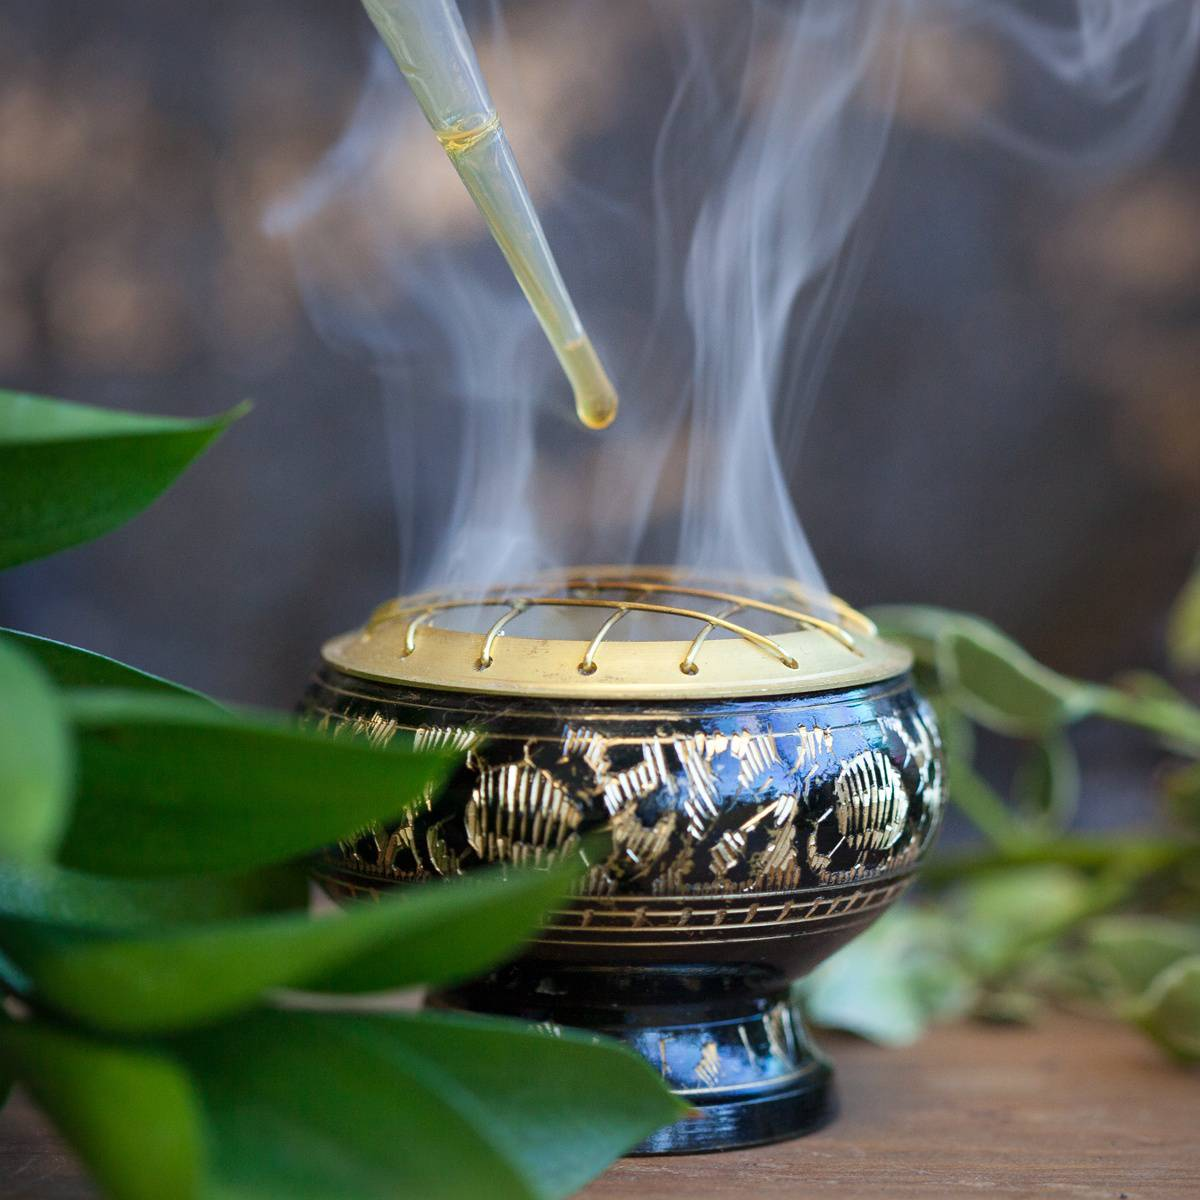 Altar Liquid Incense To Consecrate Sacred Space